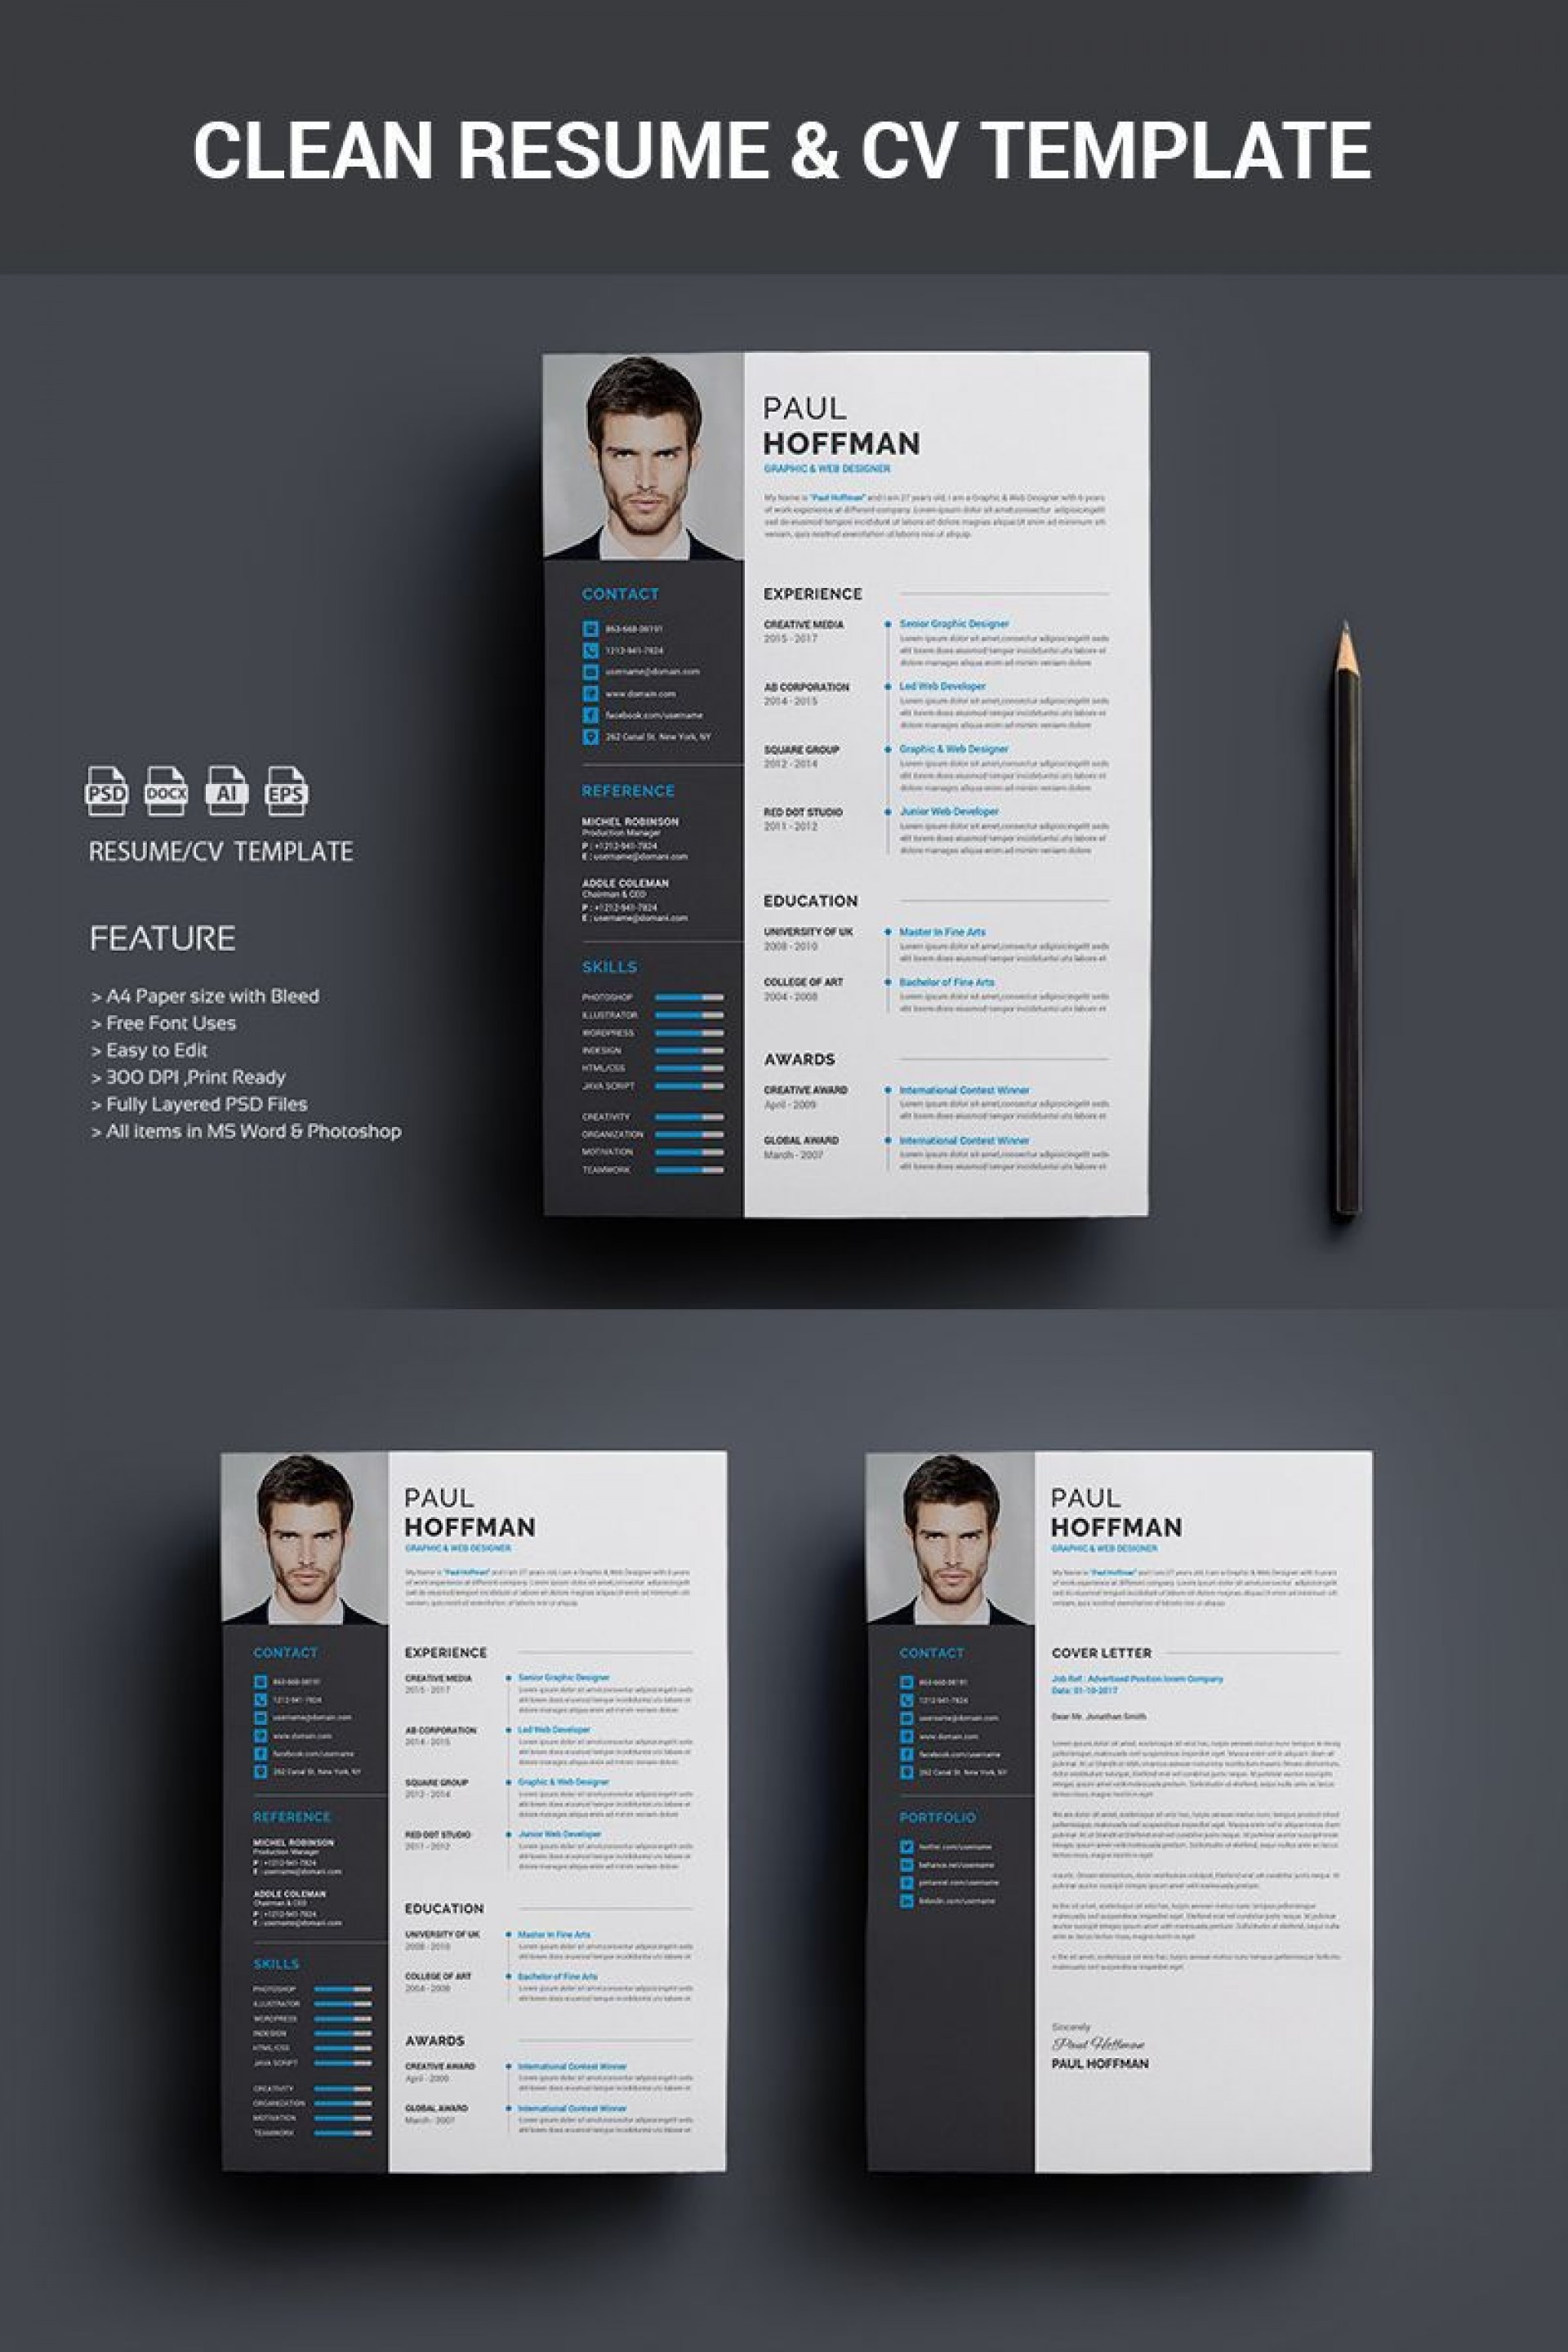 005 Archaicawful How To Create A Resume Template In Photoshop Image 1920